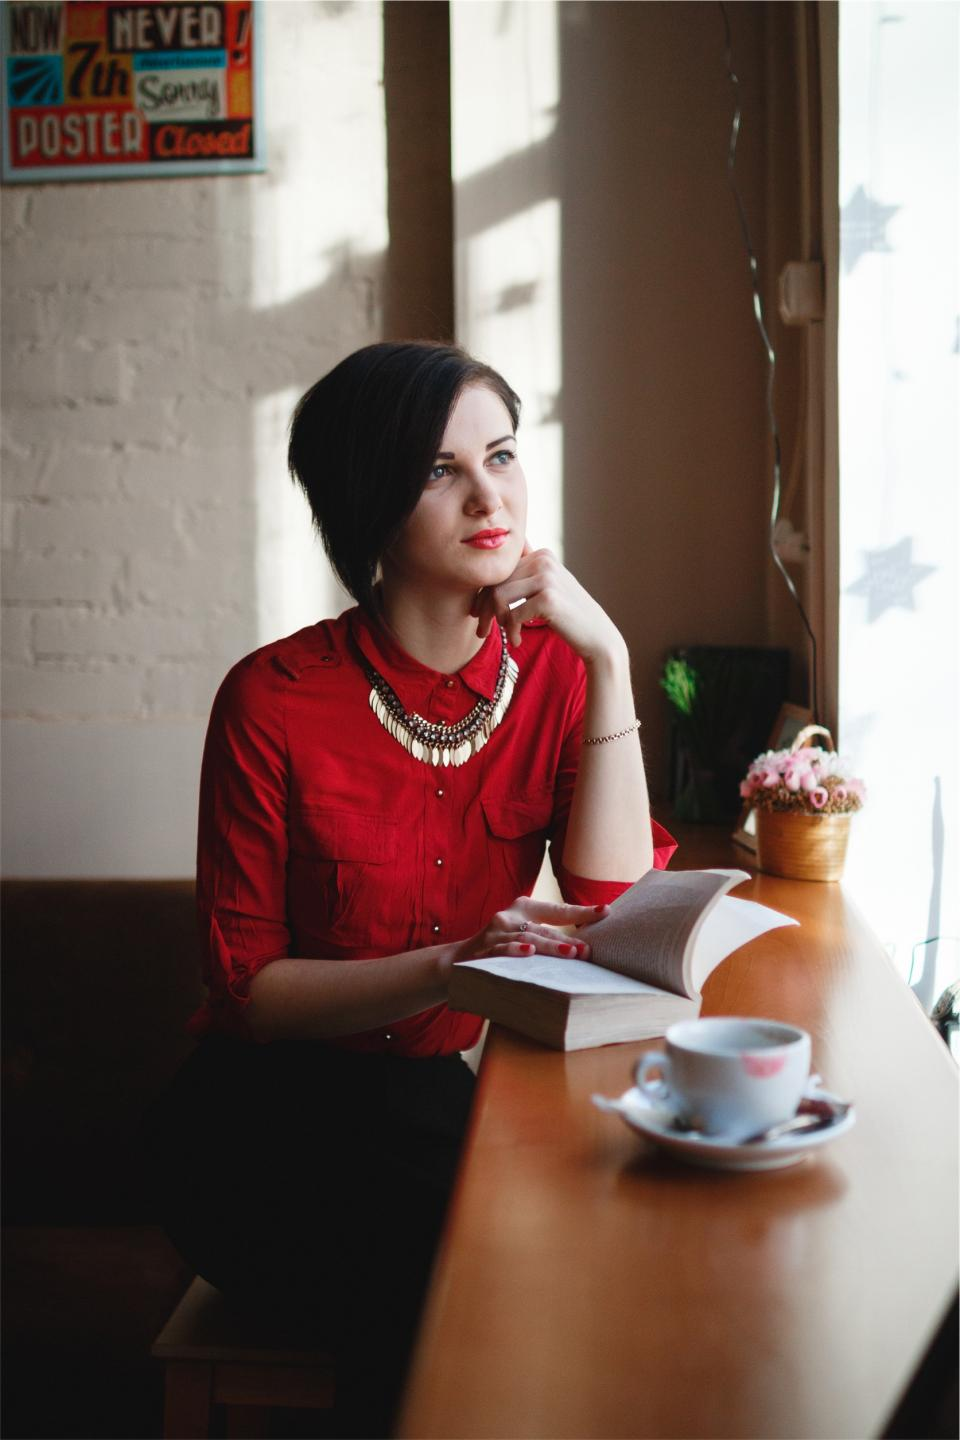 book, reading, girl, woman, pretty, beautiful, people, fashion, cafe, coffee, cup, red, shirt, makeup, thinking, looking